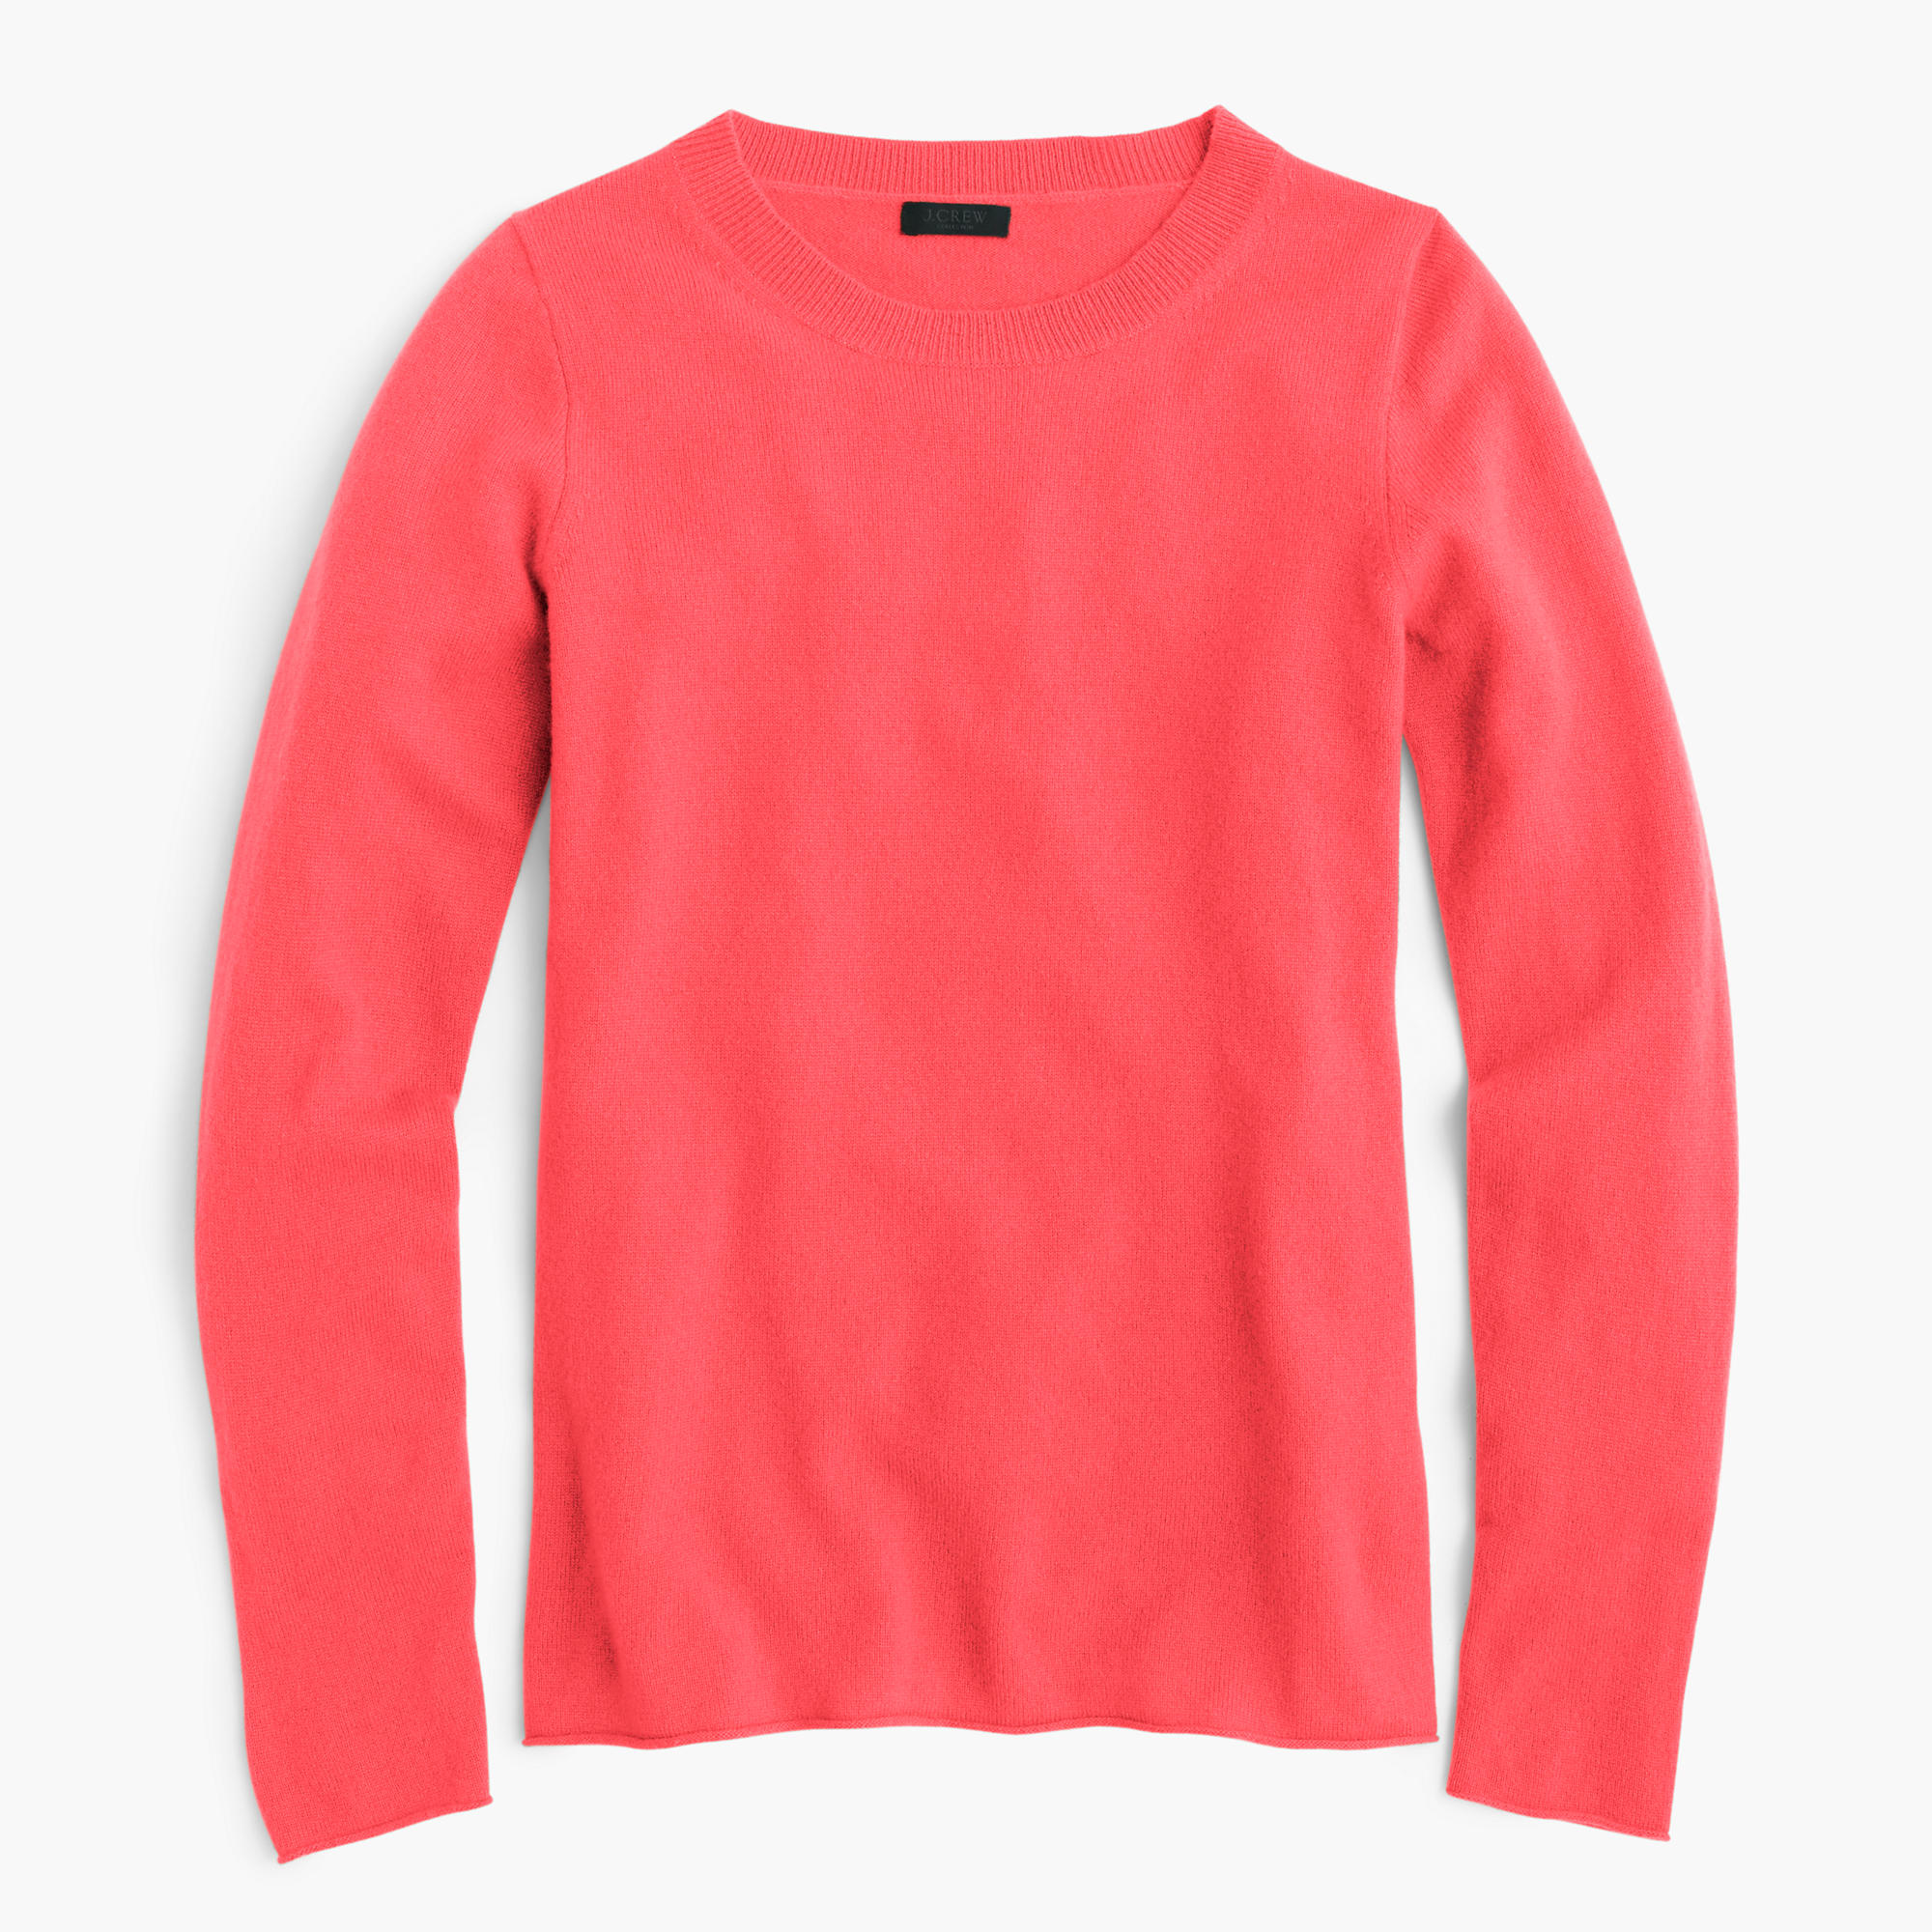 Jcrew Sweater in pink/red